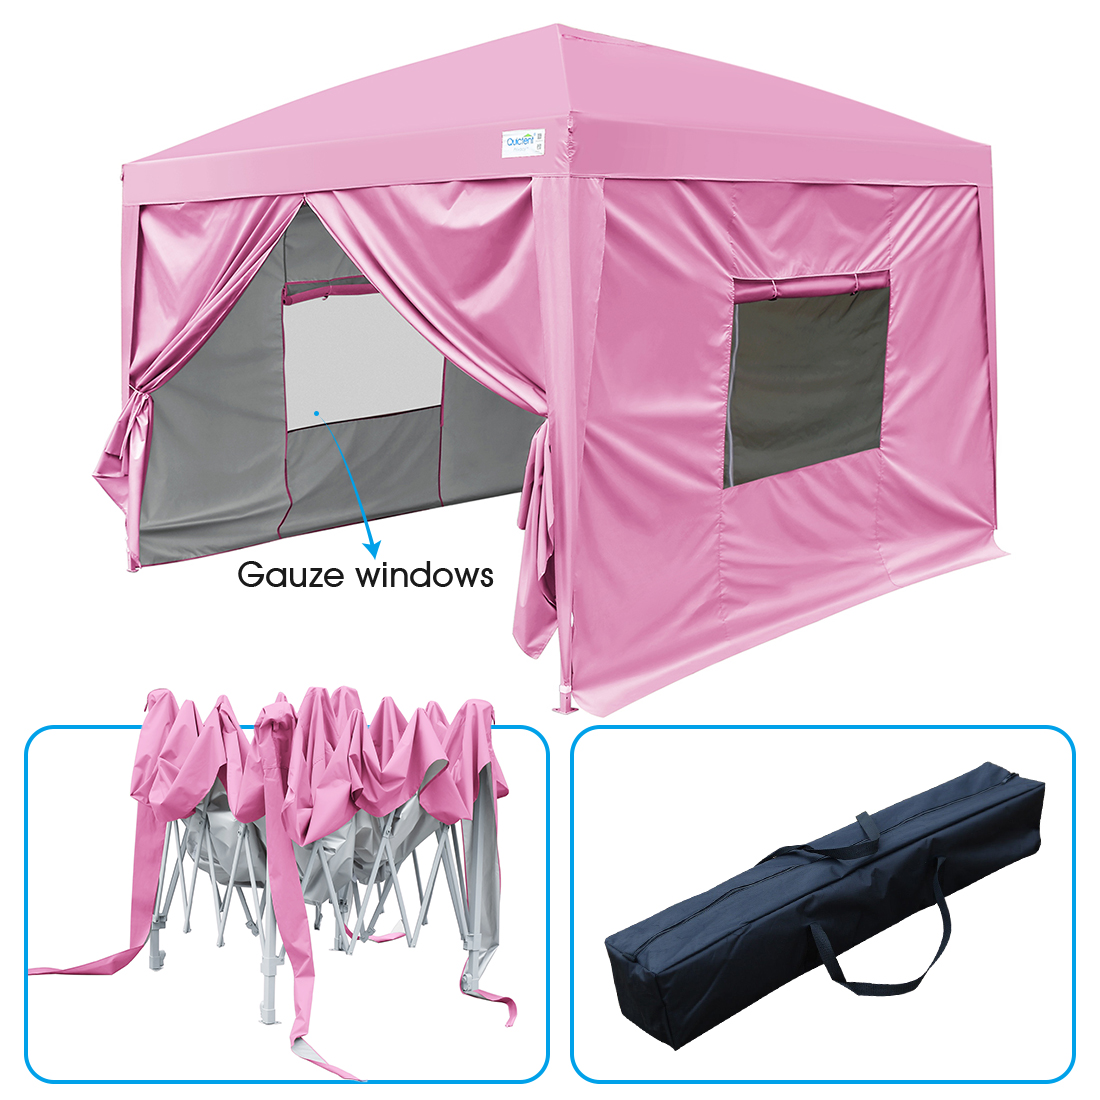 Upgraded Quictent 10x10 EZ Pop Up Canopy Party Tent Instant Gazebo with 4 Sidewalls and Mesh Windows 100% Waterproof (Pink)